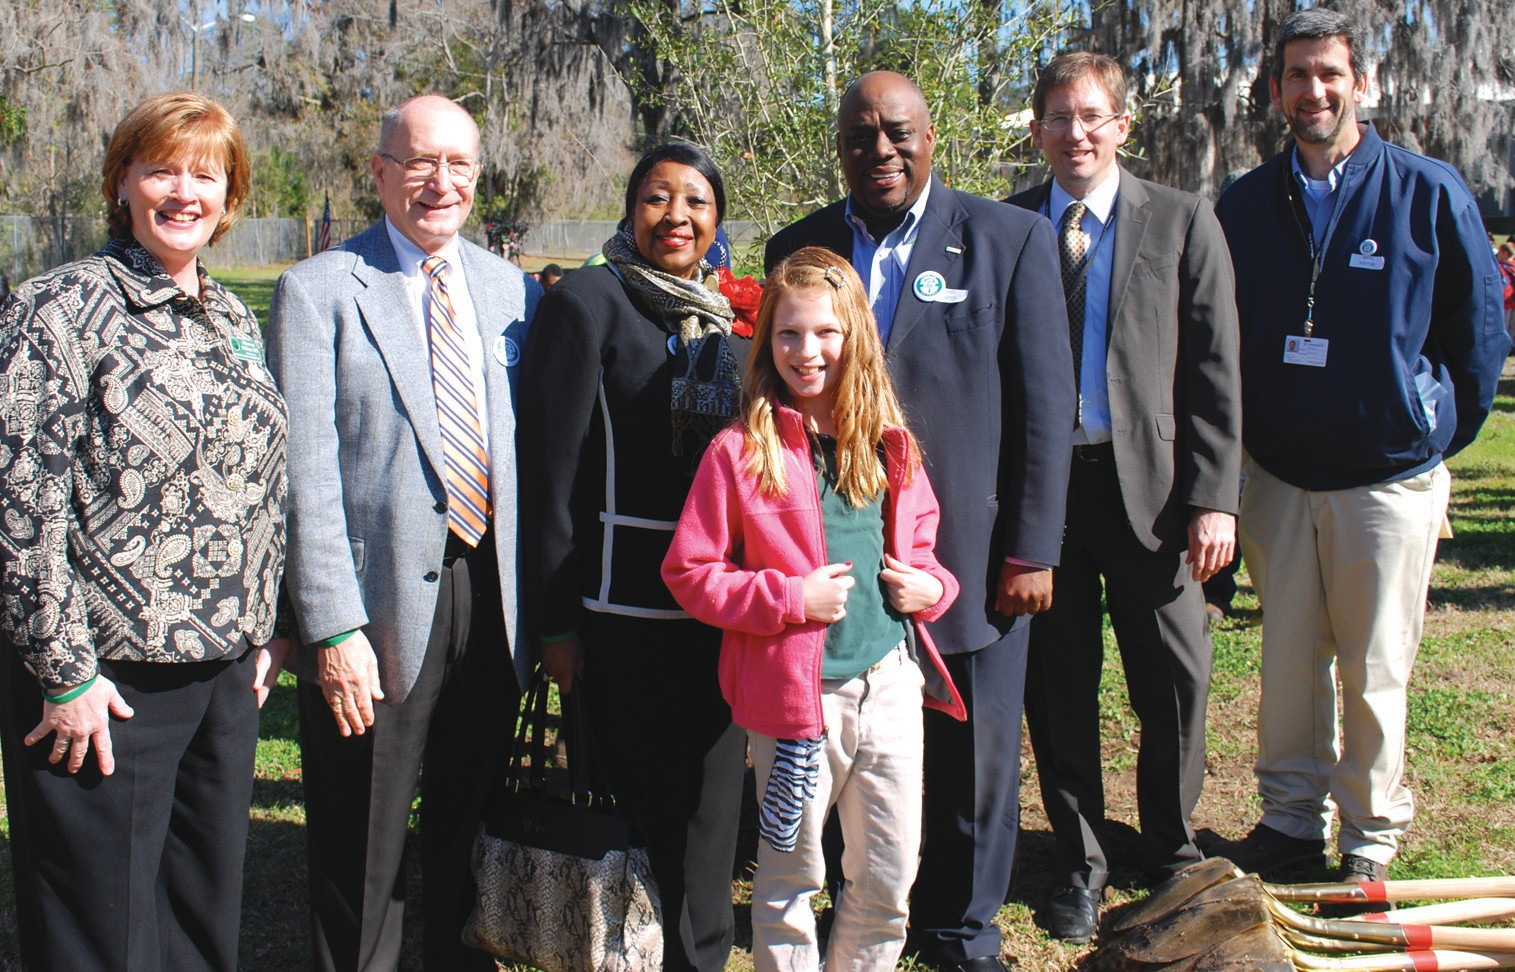 (From left to right) Windsor Forest Elementary Principal, Dr. Marcia McManus; Superintendent of Schools, Thomas B. Lockamy, Jr. Ed.D., Mayor Edna Jackson, Windsor Forest Elementary Student Council President, Lakelyn Luke; Mayor Pro Tem Van Johnson; Park & Tree Commissioner, Walt Harper and Forestry Administrator, Bill Haws